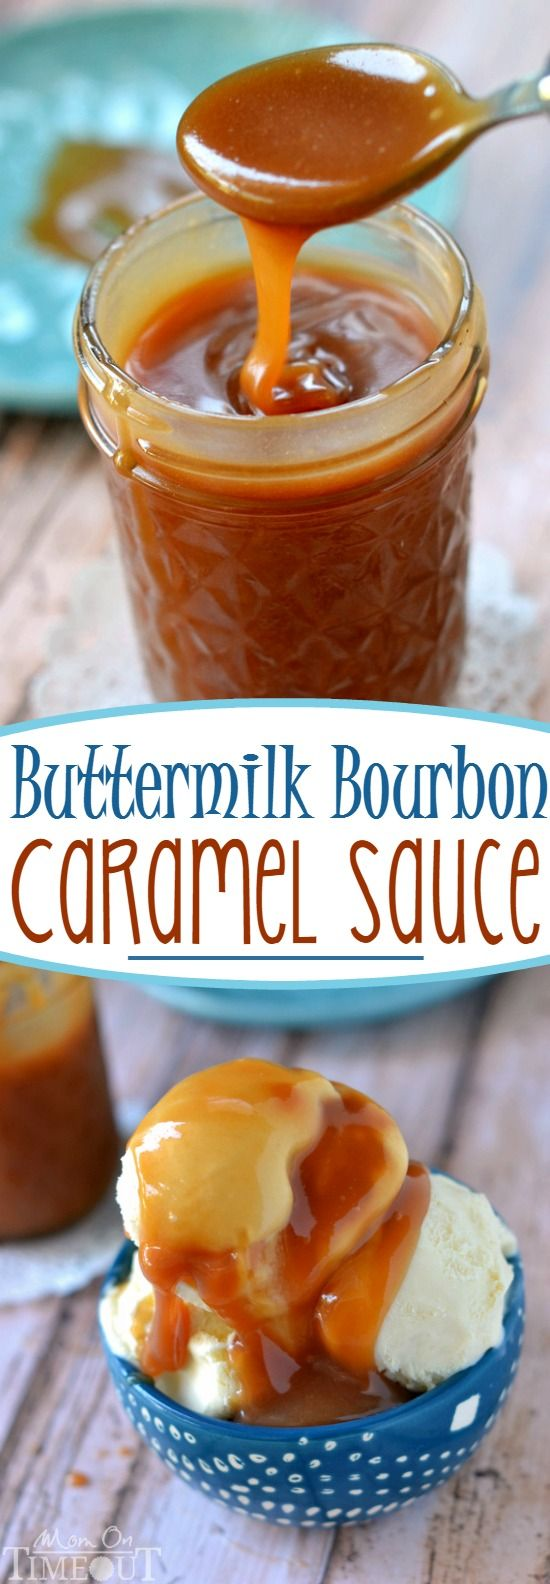 You may never buy caramel sauce again after you make this incredible Buttermilk Bourbon Caramel Sauce – bourbon optional!: